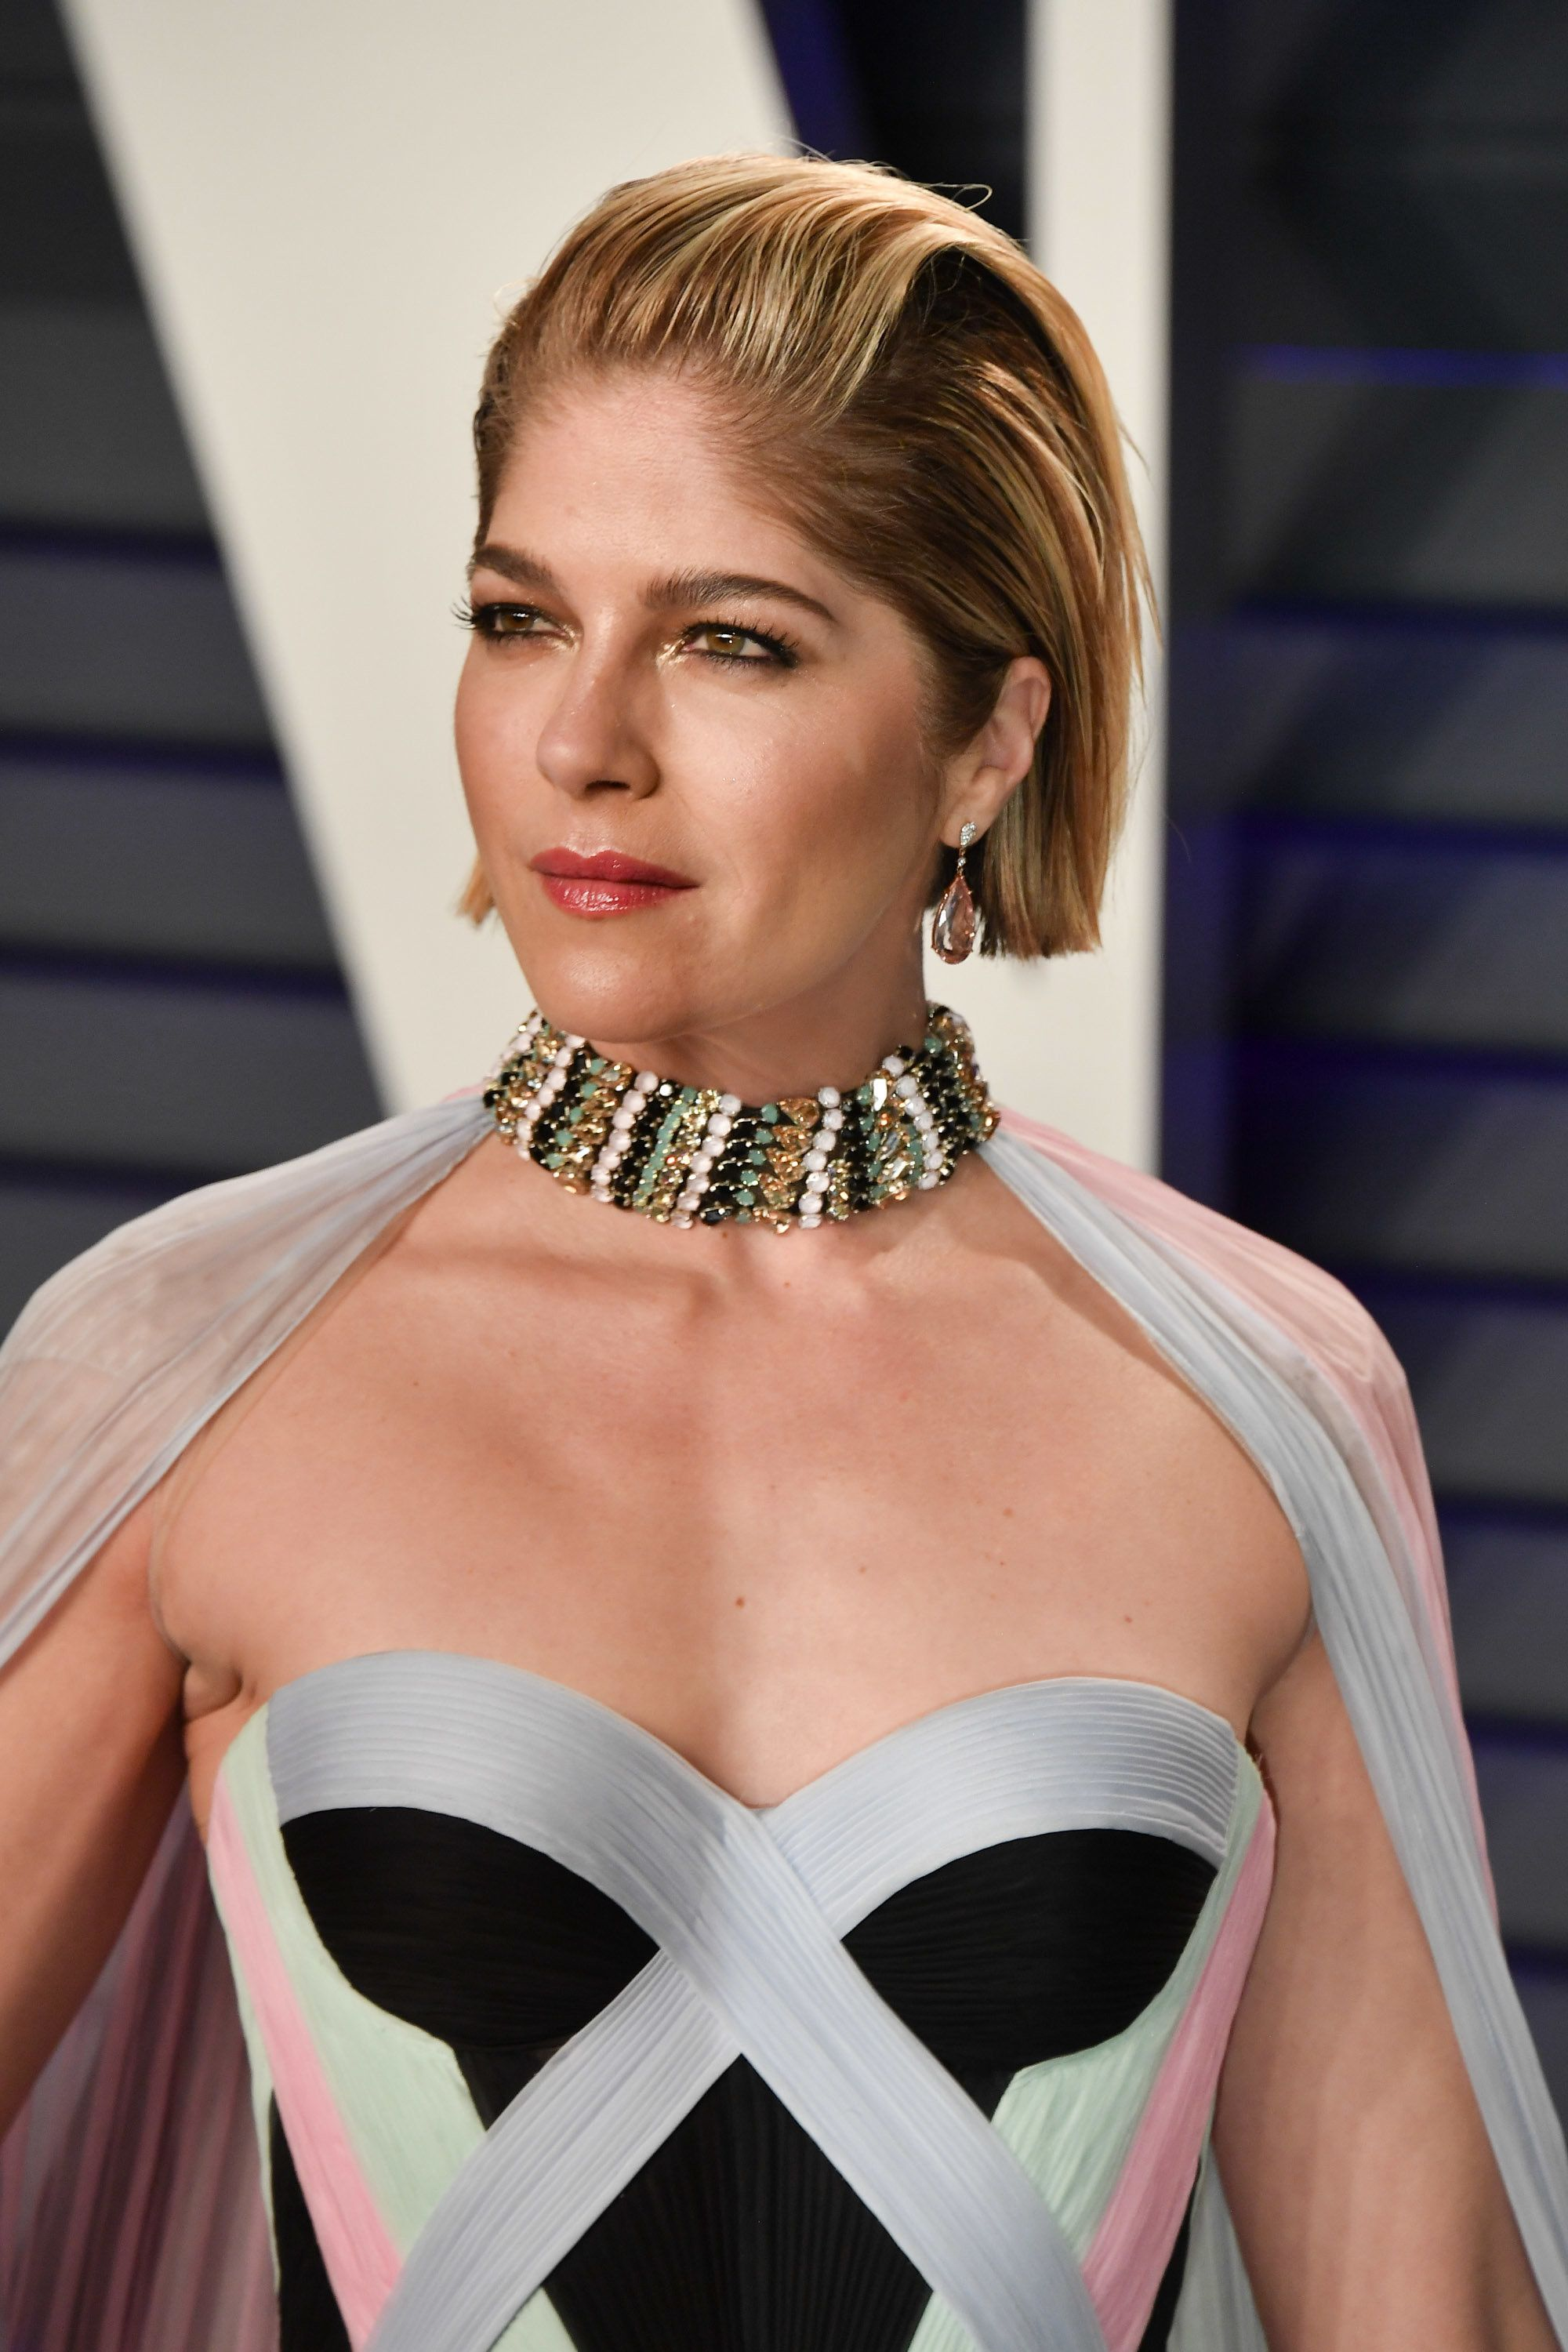 BEVERLY HILLS, CALIFORNIA - FEBRUARY 24: Selma Blair attends the 2019 Vanity Fair Oscar Party hosted by Radhika Jones at Wallis Annenberg Center for the Performing Arts on February 24, 2019 in Beverly Hills, California. (Photo by George Pimentel/Getty Images)